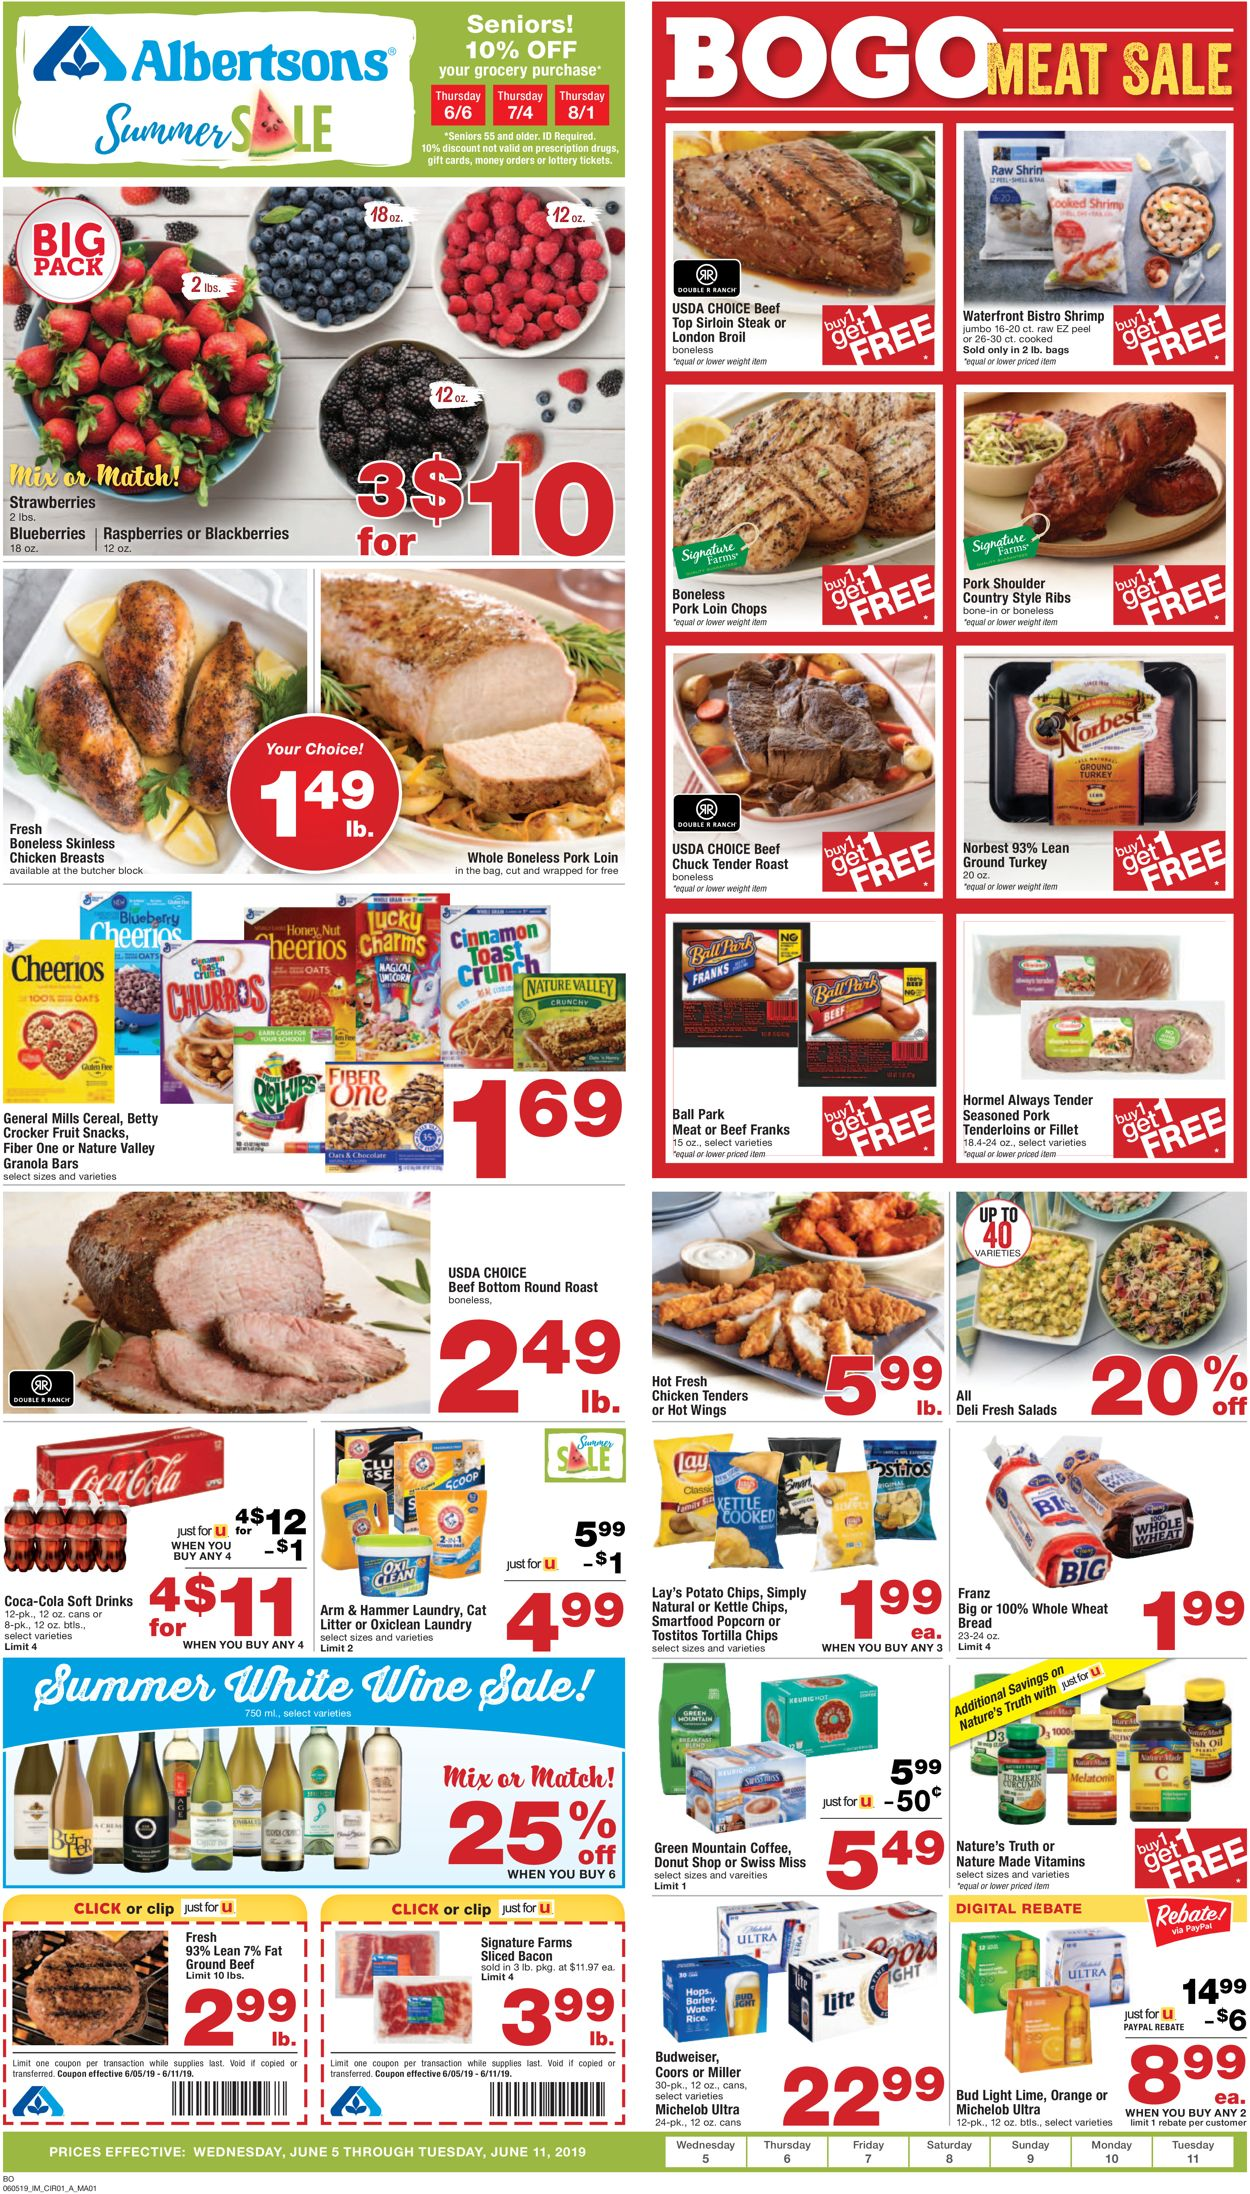 Albertsons Current weekly ad 06/05 - 06/11/2019 - frequent-ads com